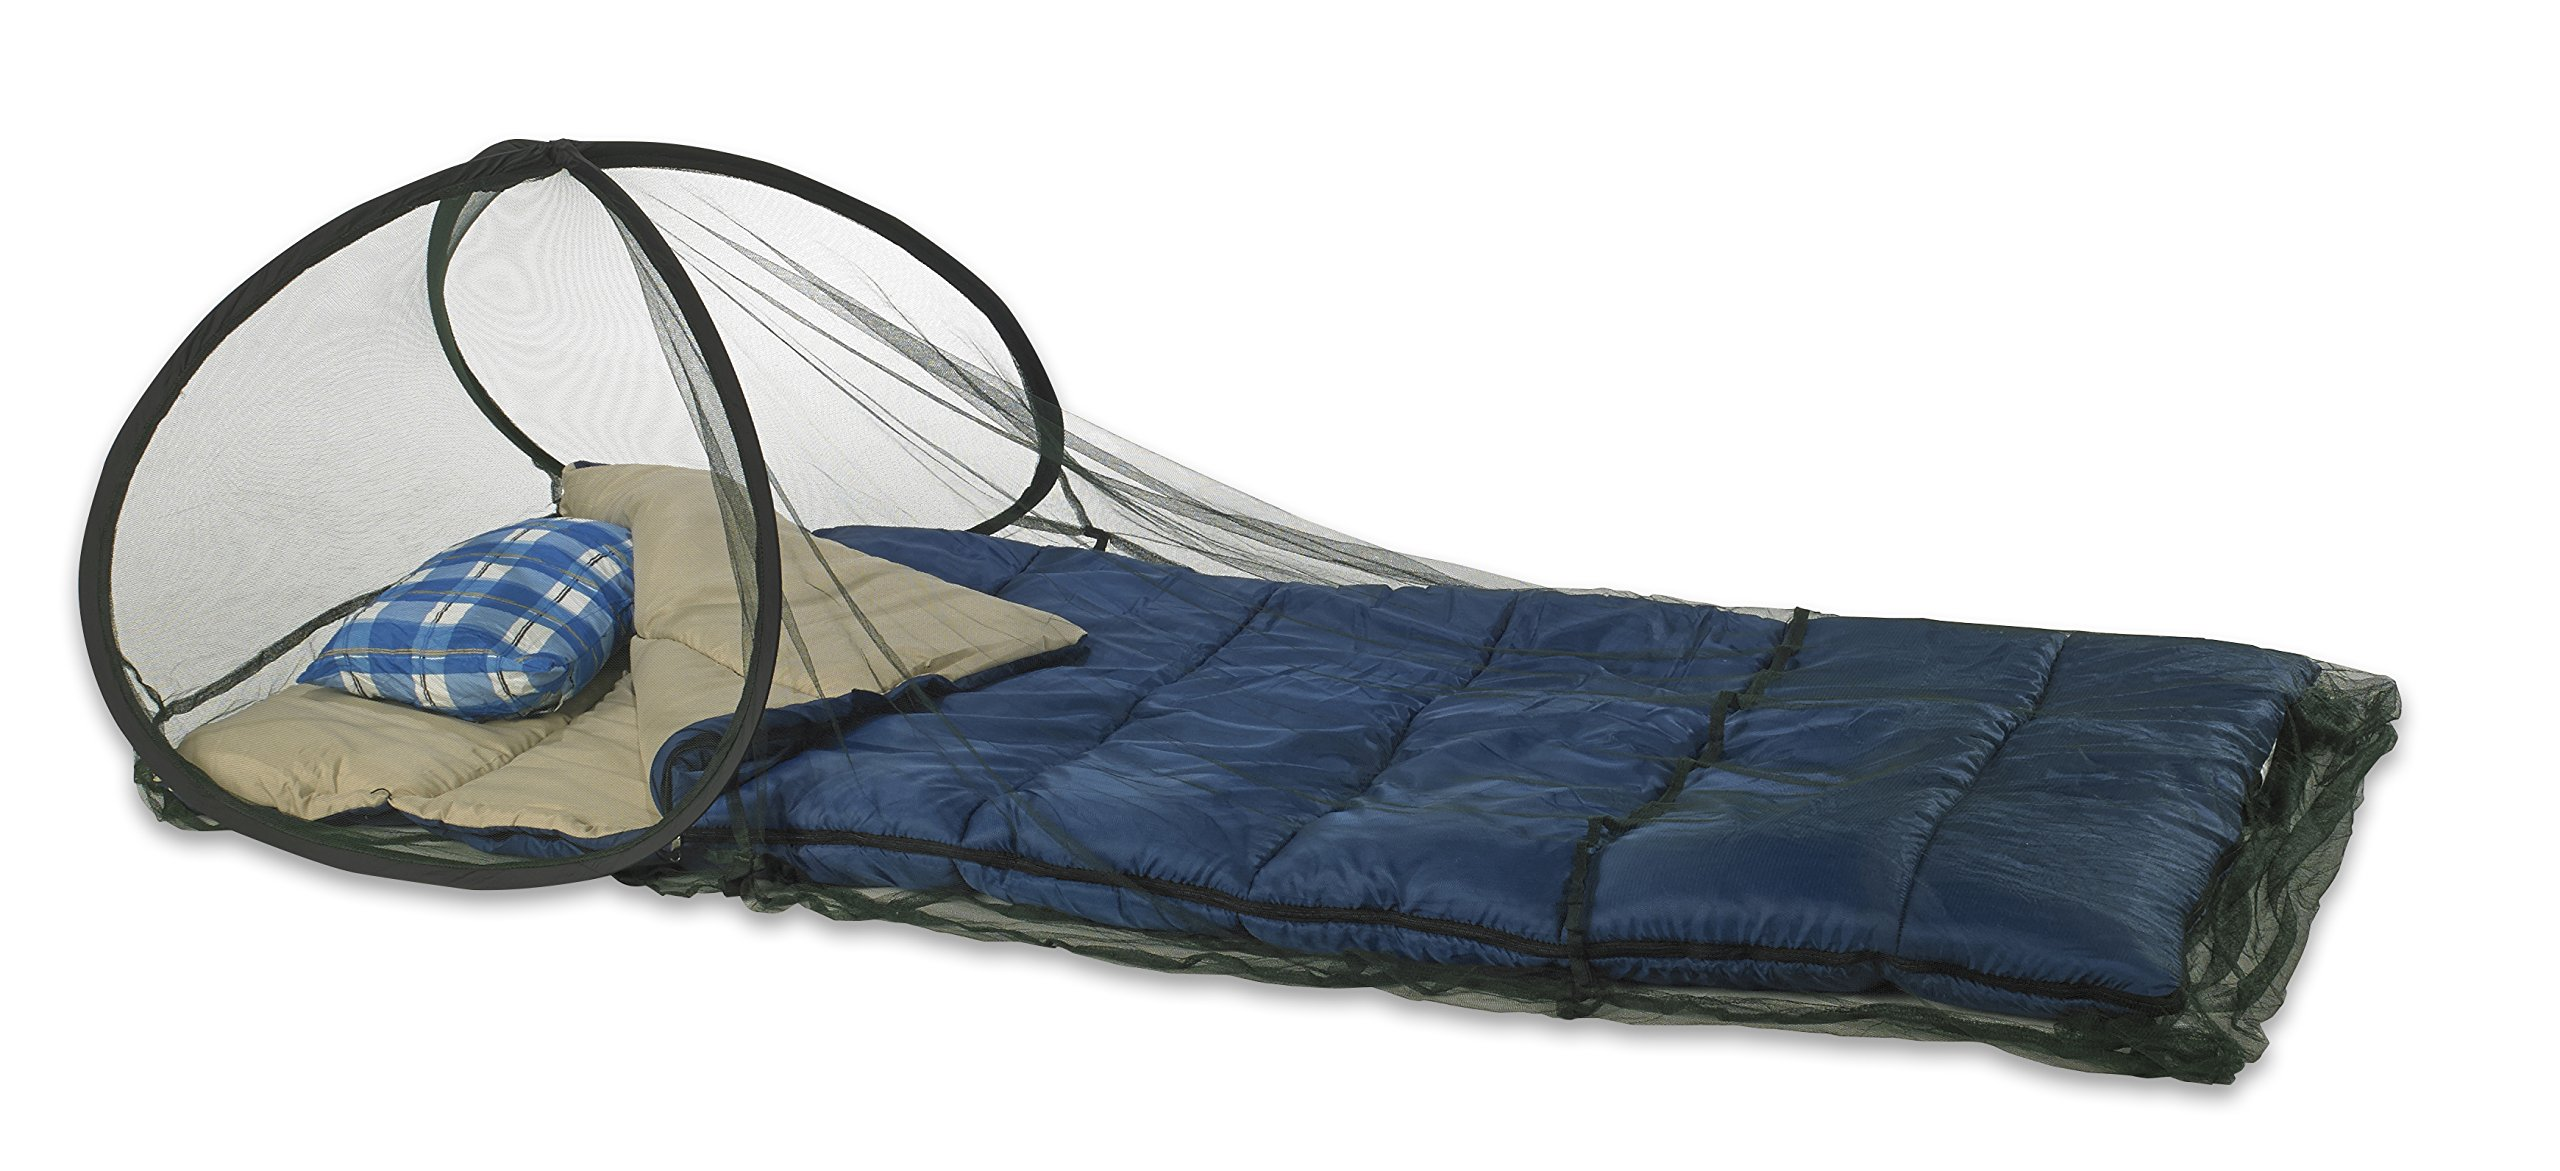 Atwater Carey Sleep Screen Pop-Up Mosquito Net Pre-treated with Built-In Insect Shield